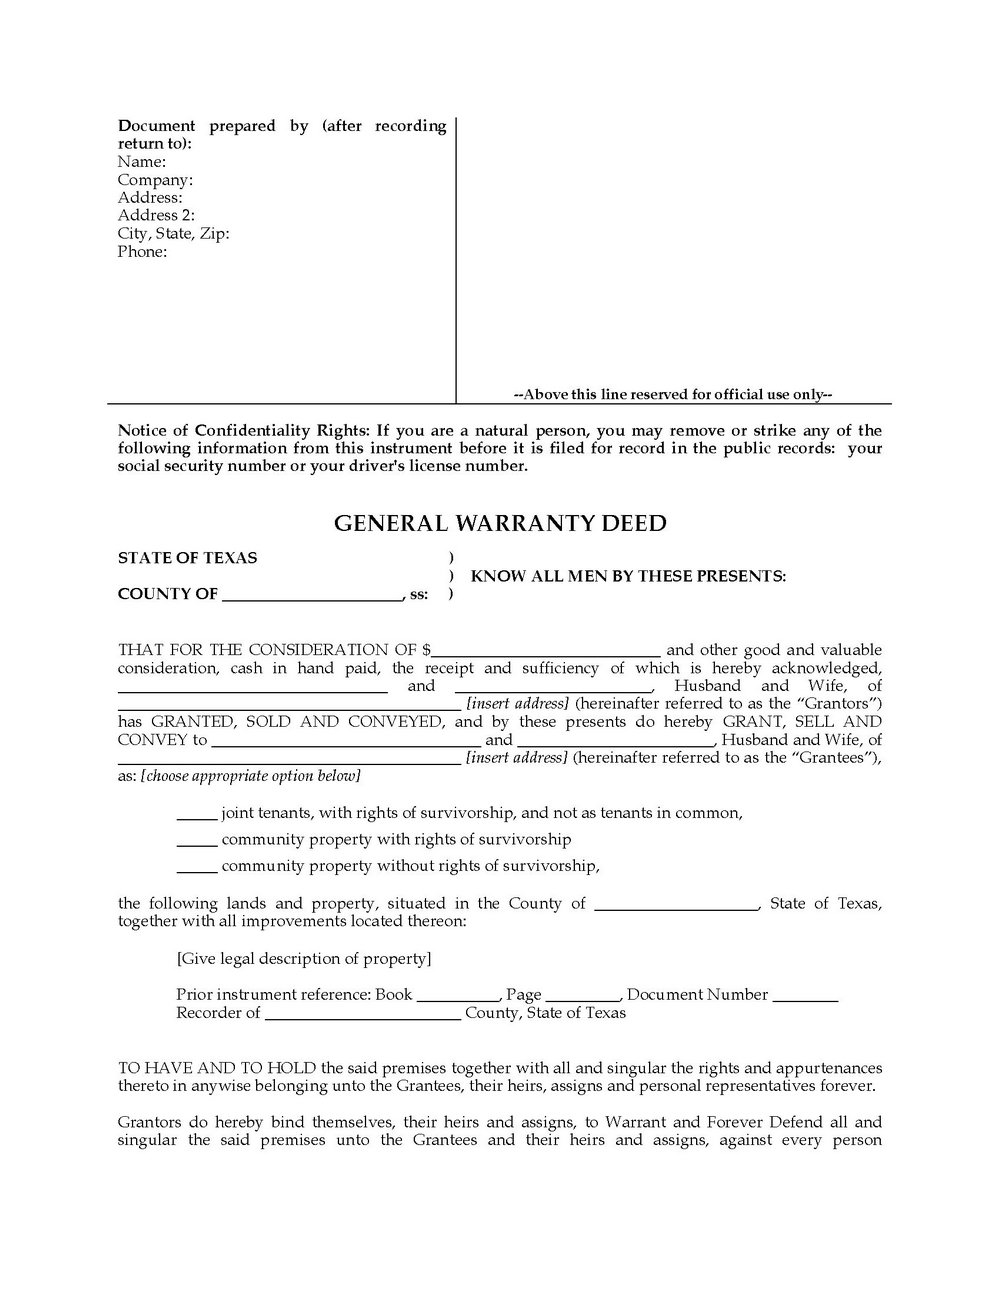 General Warranty Deed Form California